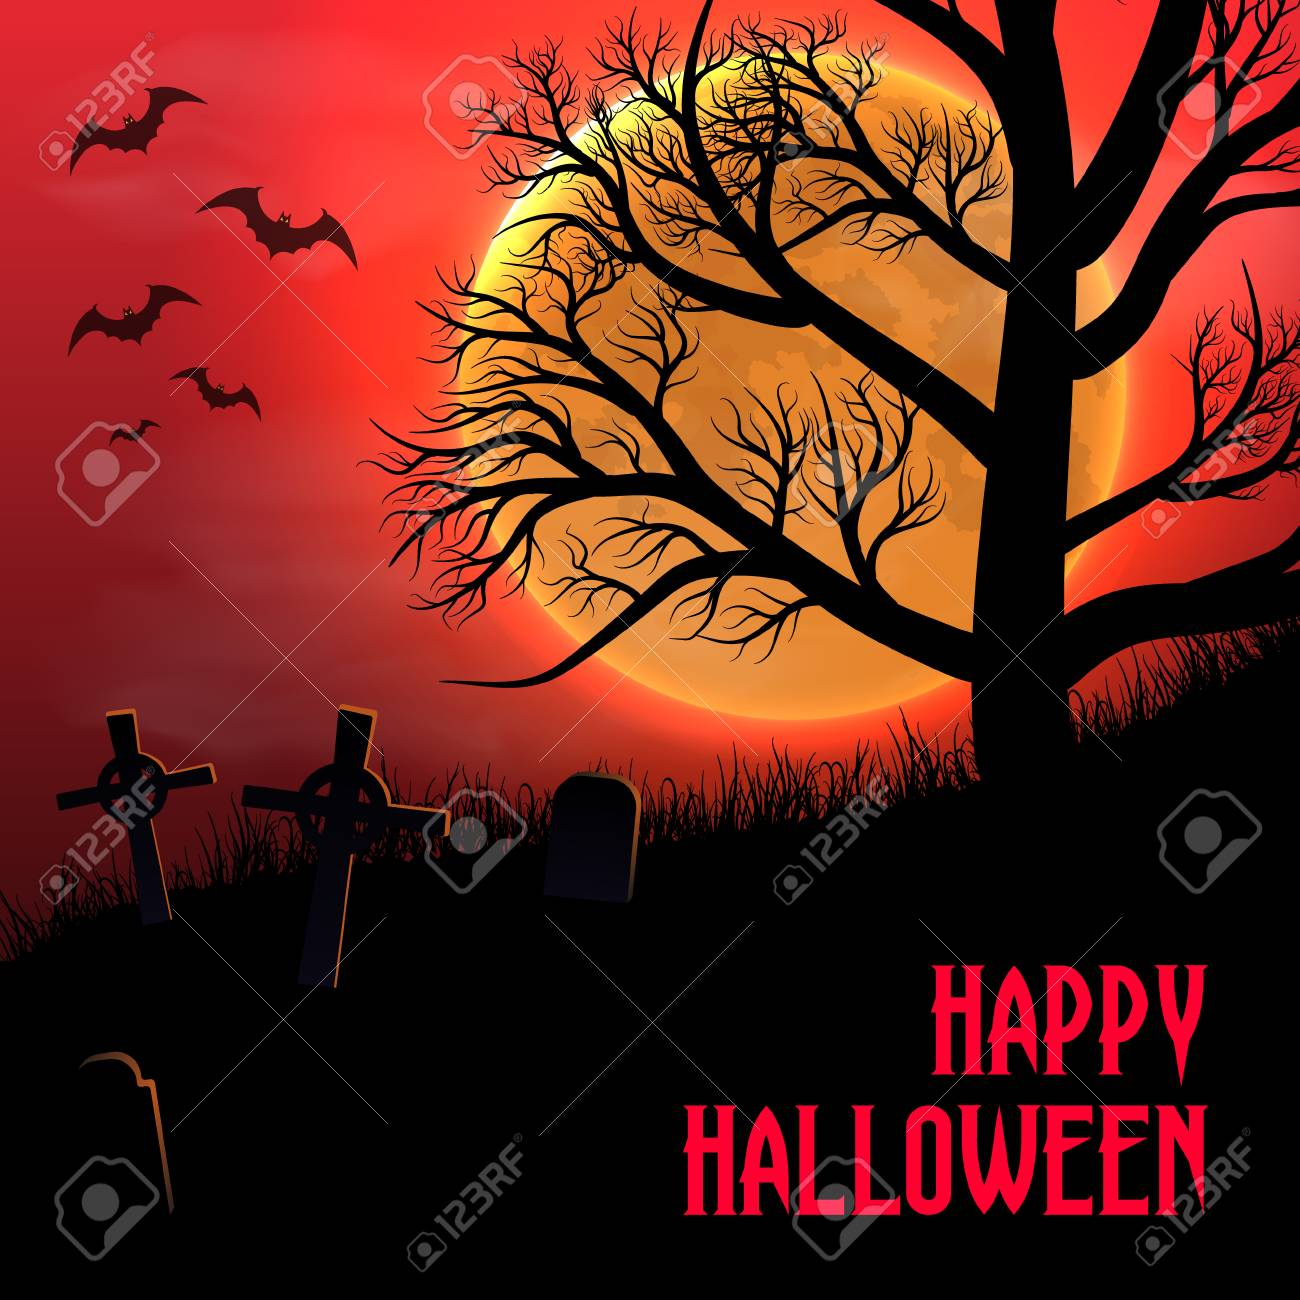 Happy Halloween background with graveyard, trees and moon - 109879666